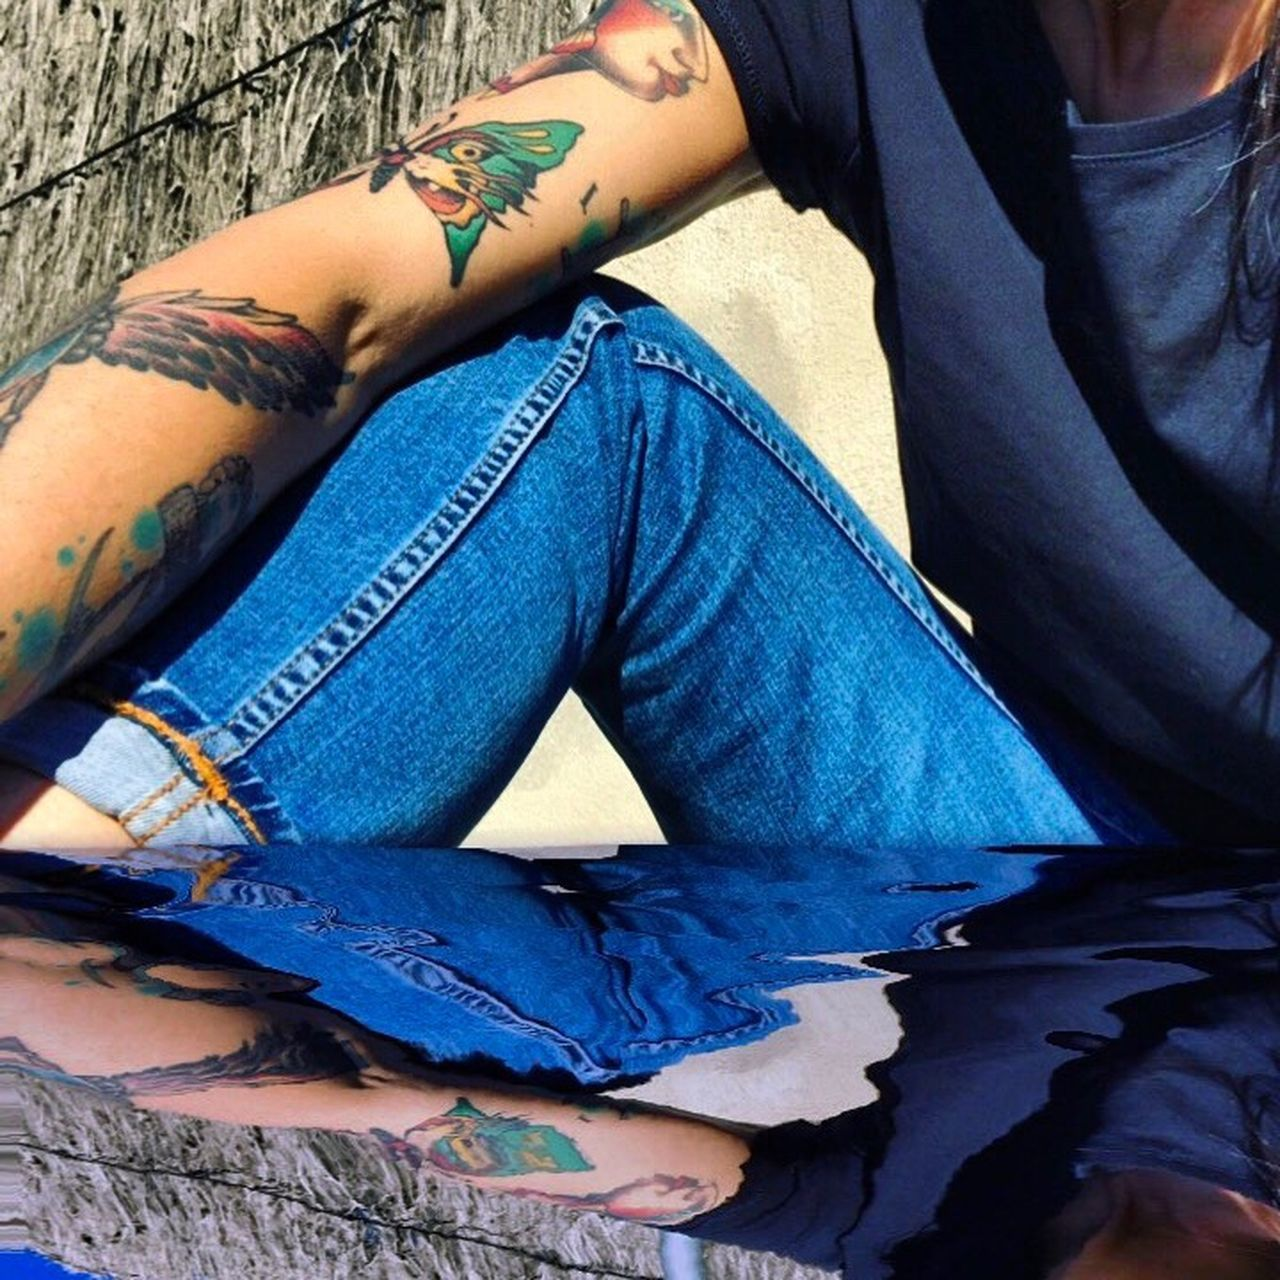 real people, one person, tattoo, casual clothing, lifestyles, day, outdoors, low section, human hand, men, human body part, close-up